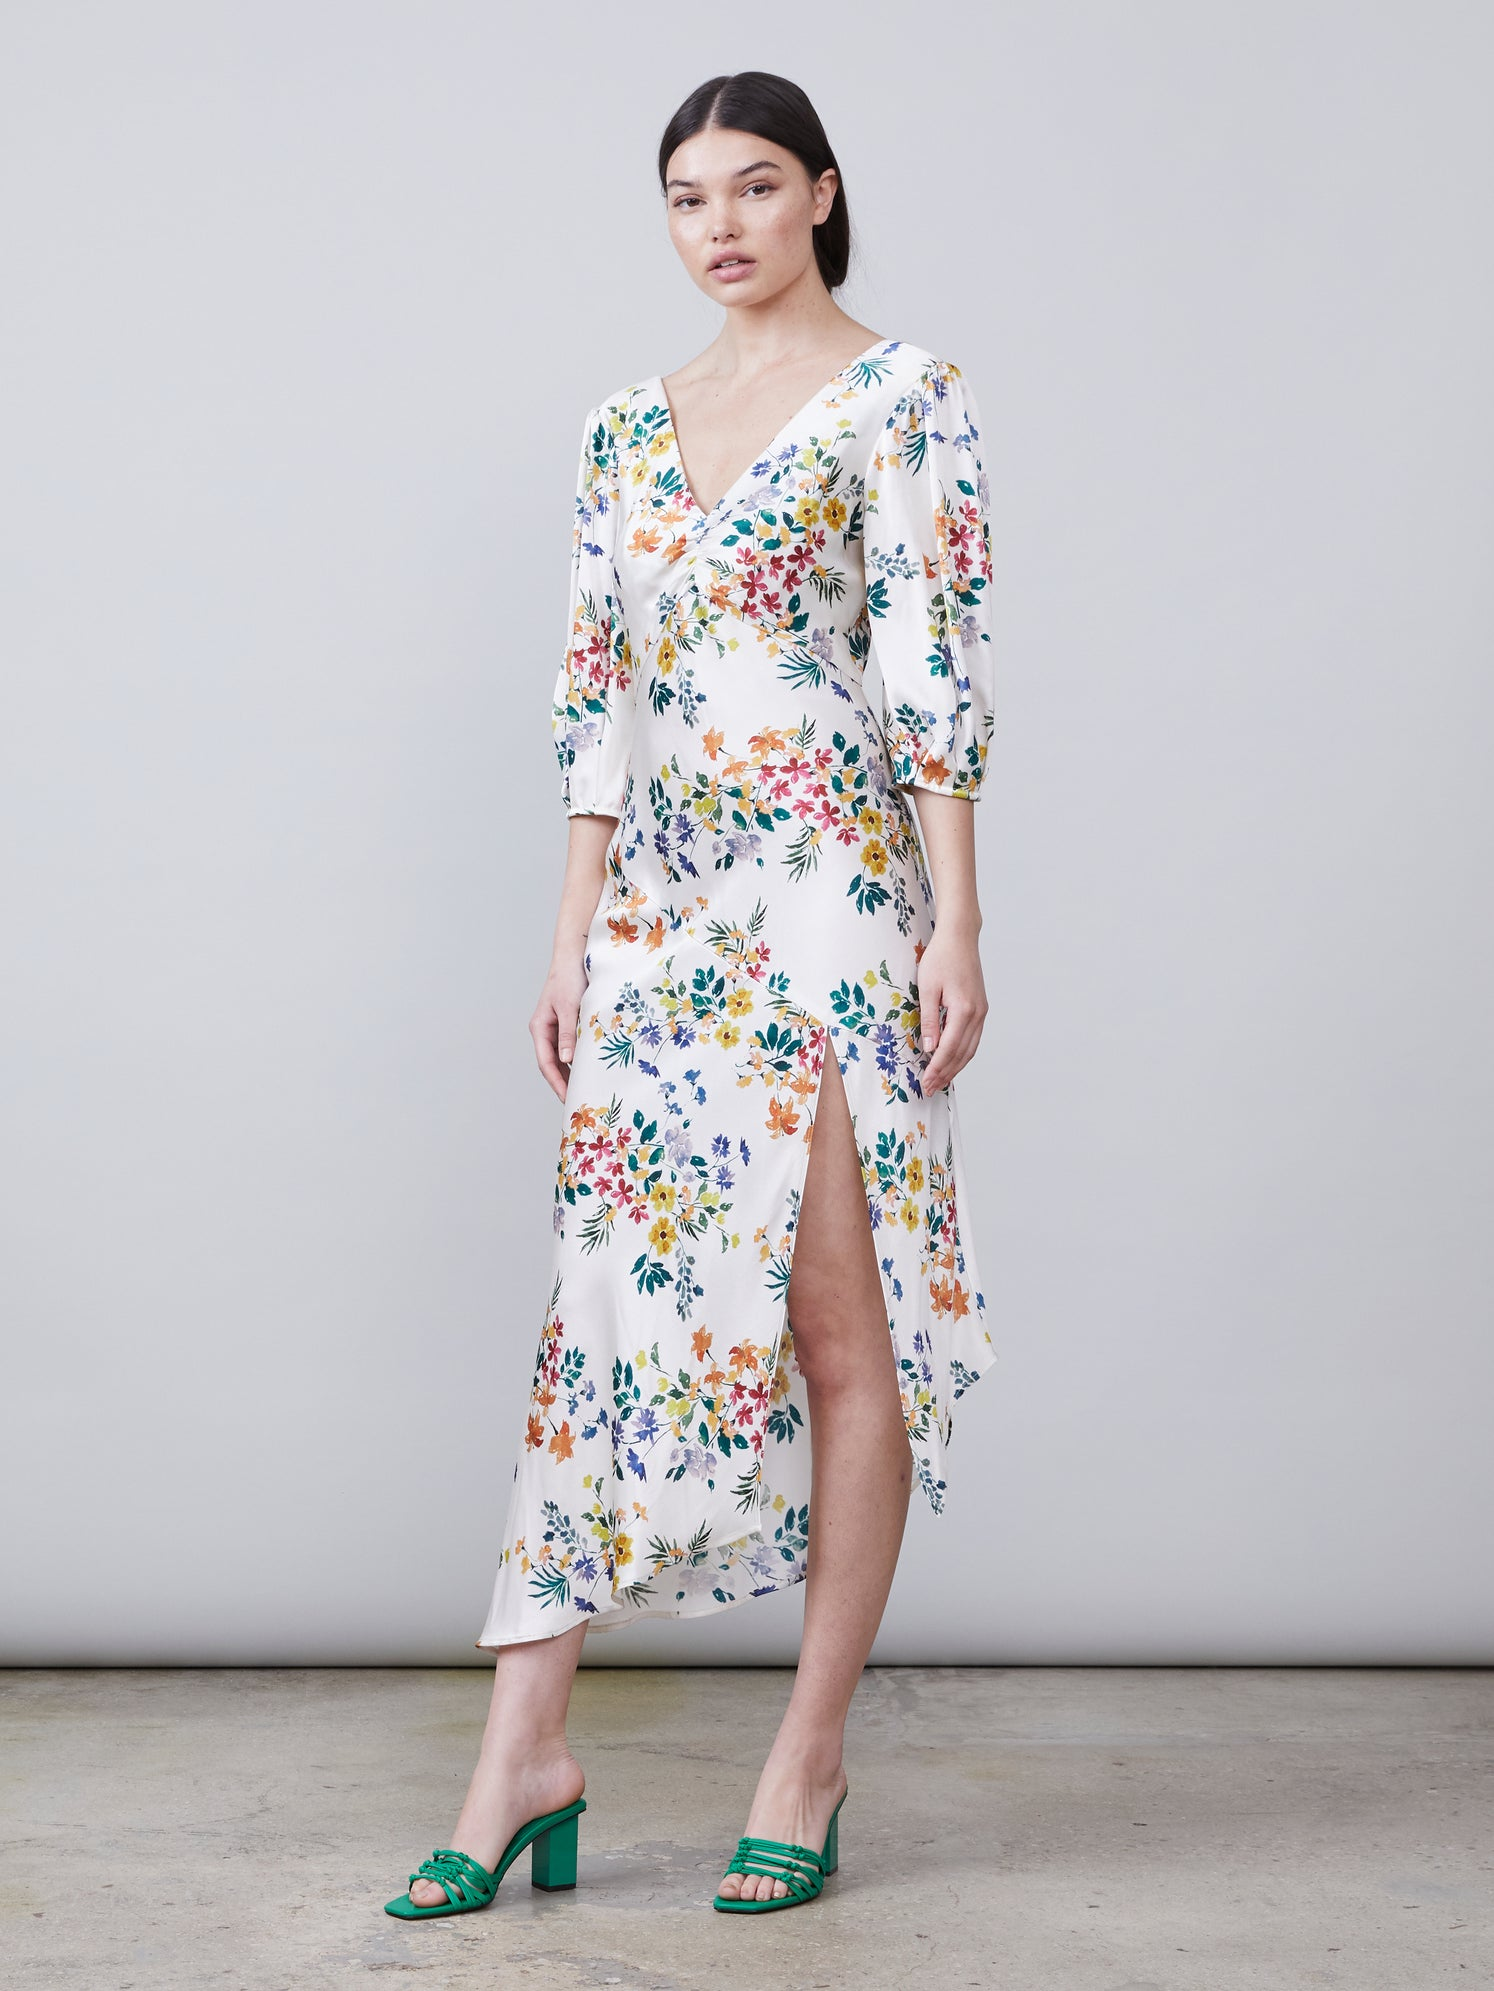 3/4 view of Louise Deep-V Dress in multi color floral print fabric featuring asymmetrical hemline, front leg slit and puff sleeves